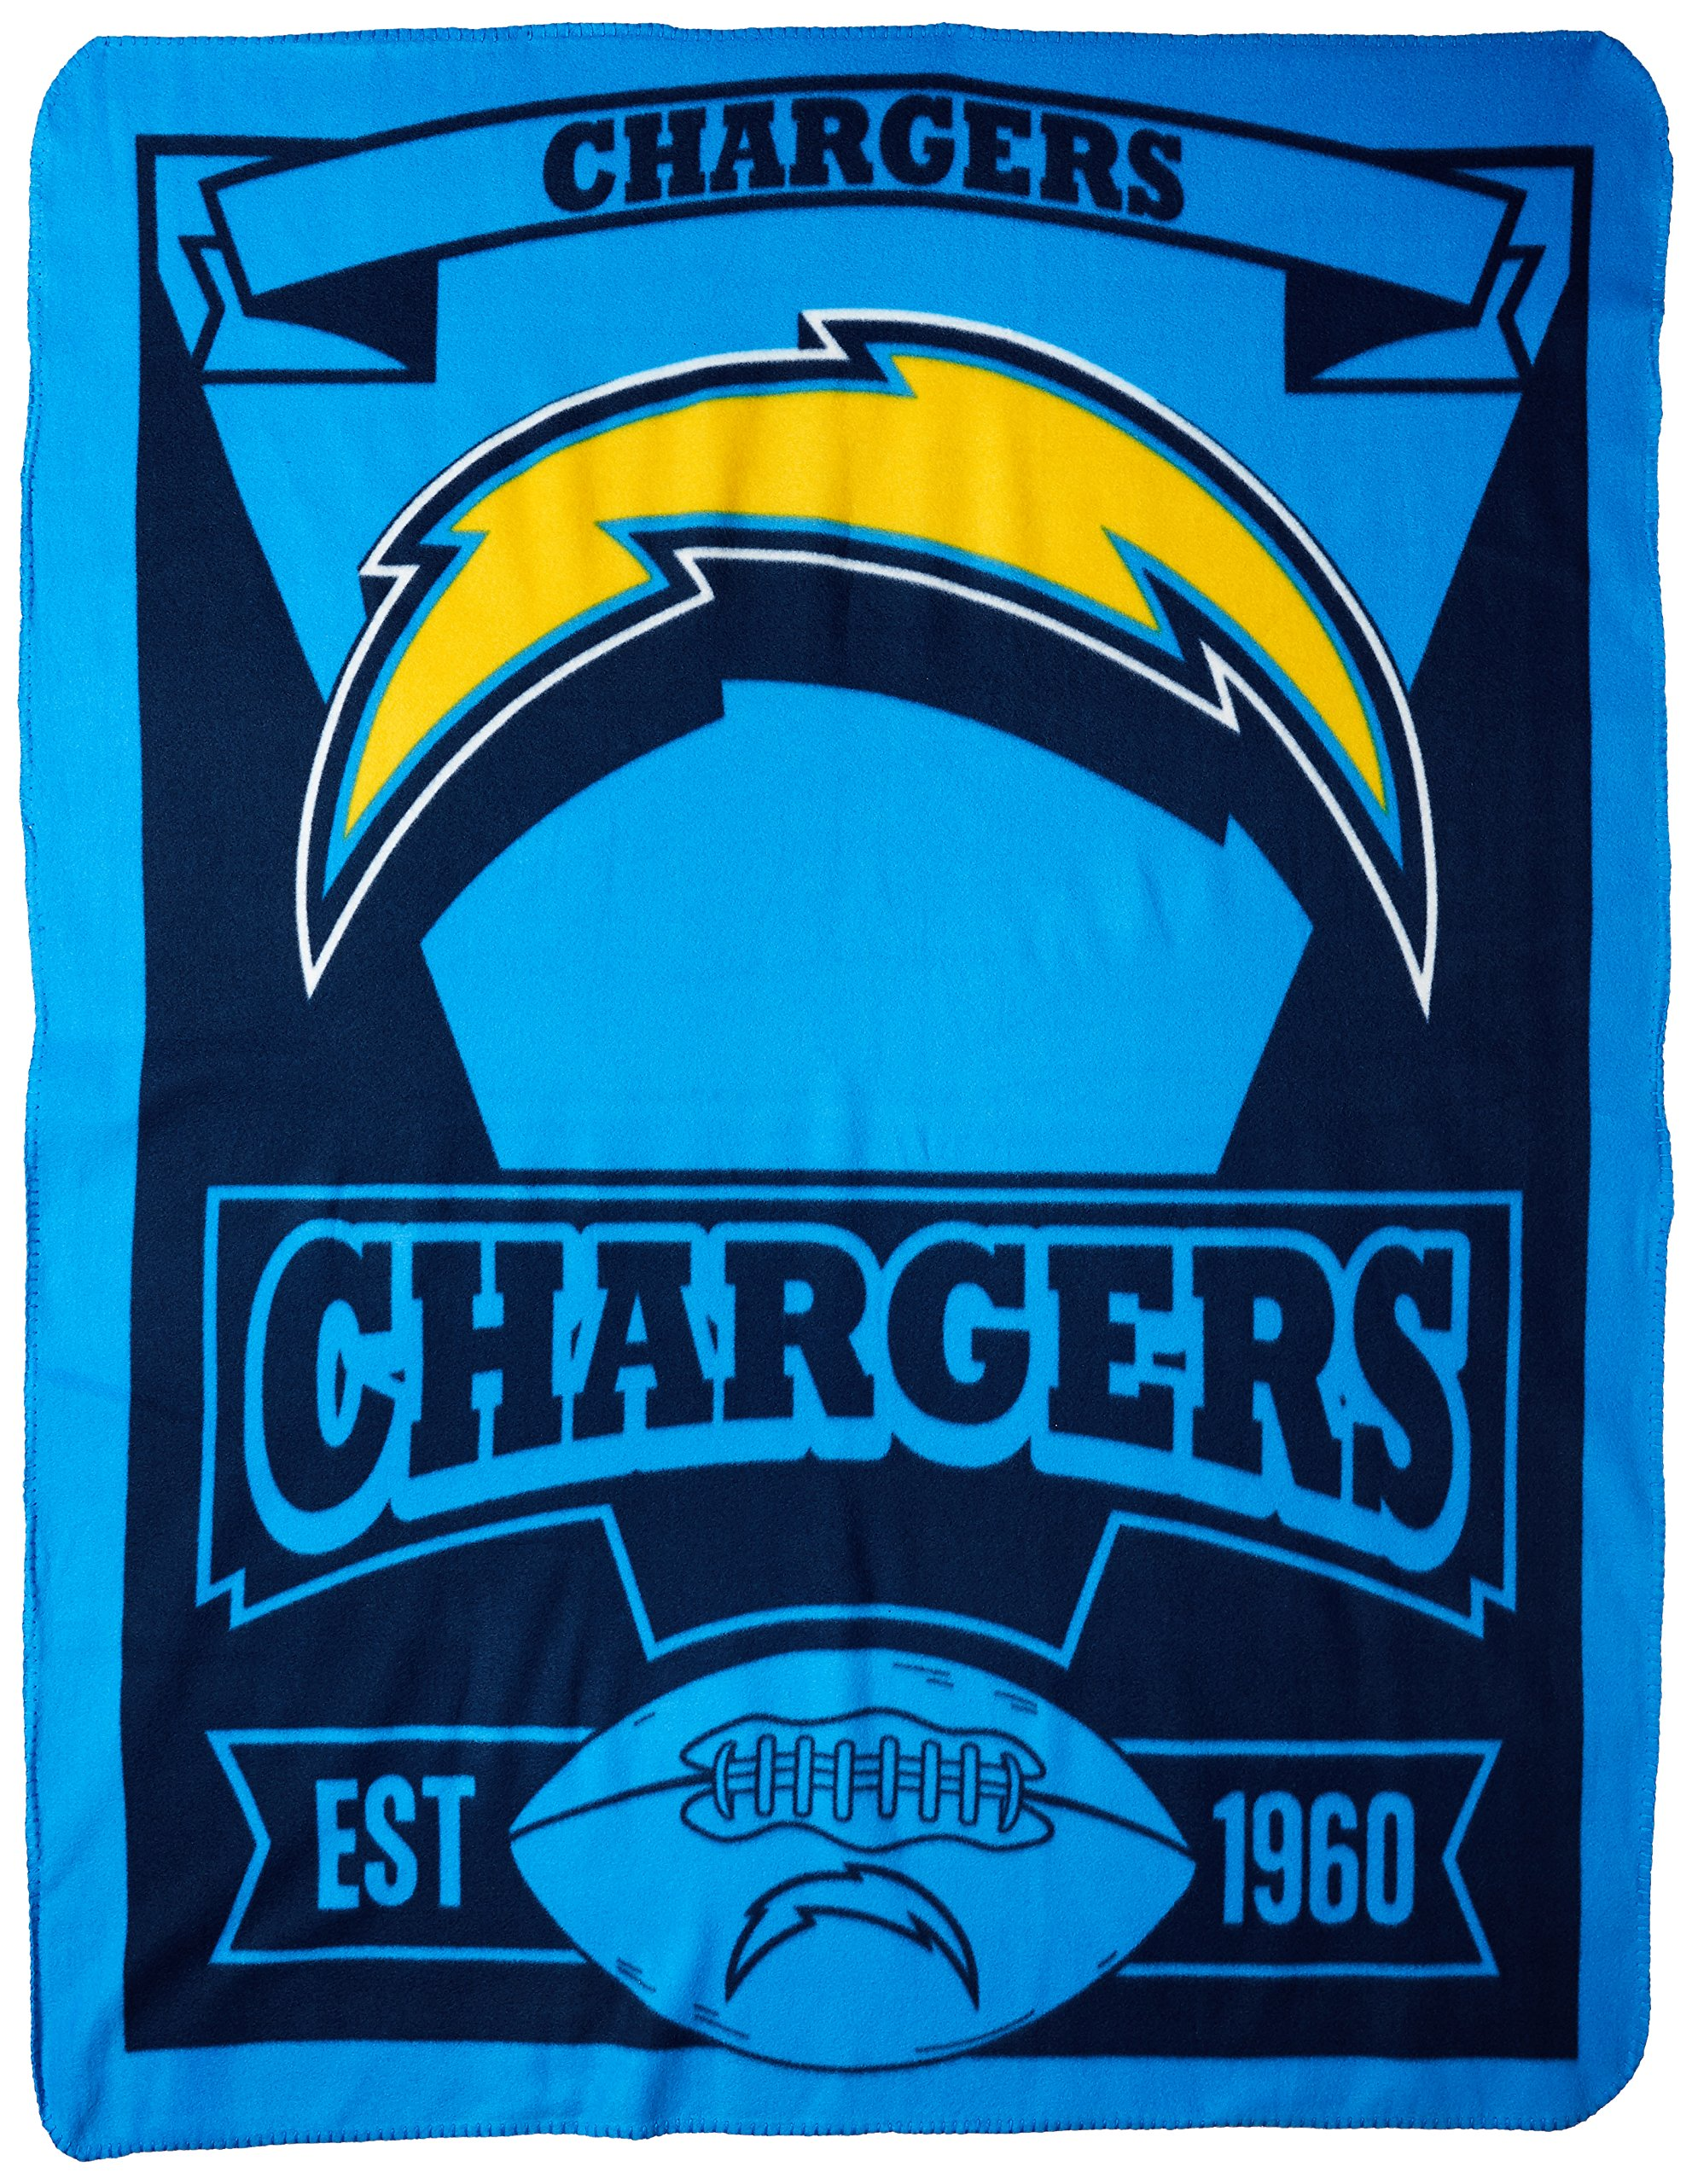 The Northwest Company Officially Licensed NFL Los Angeles Chargers Marque Printed Fleece Throw Blanket, 50'' x 60'', Multi Color by The Northwest Company